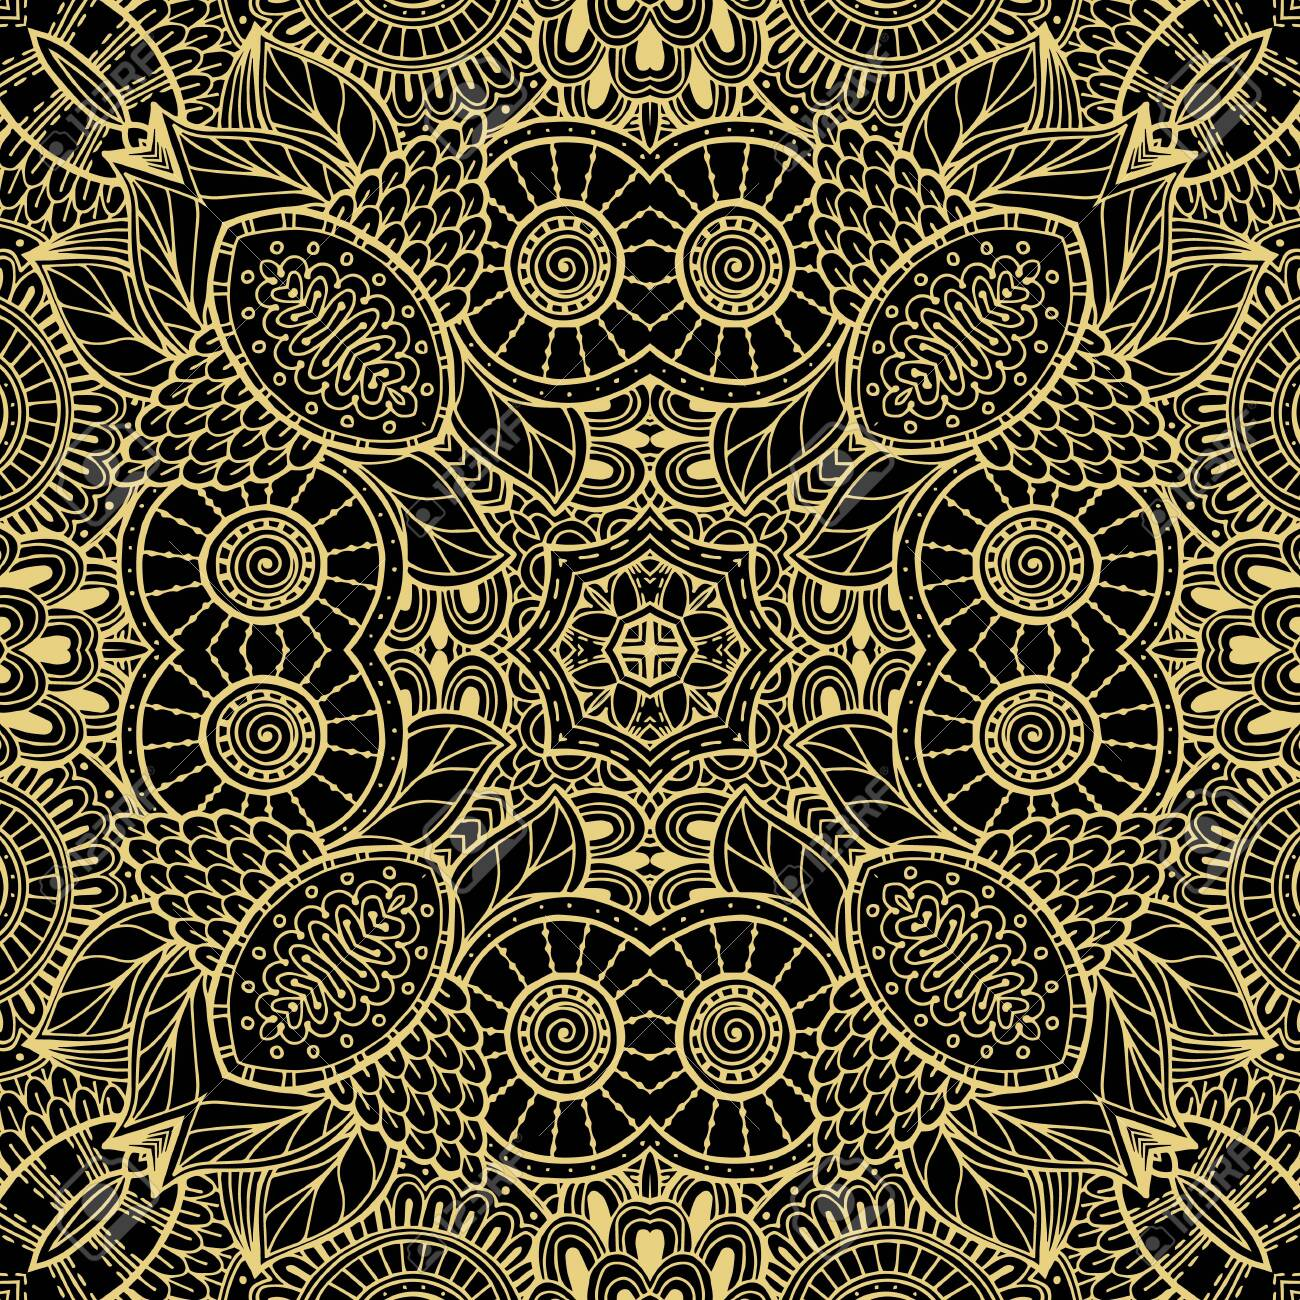 Floral lines vector seamless pattern. Ornamental ethnic tribal style lace background. Doodle line art tracery lacy ornament. Abstract shapes, vintage flowers. Elegance ornate repeat fantasy backdrop. - 140027265